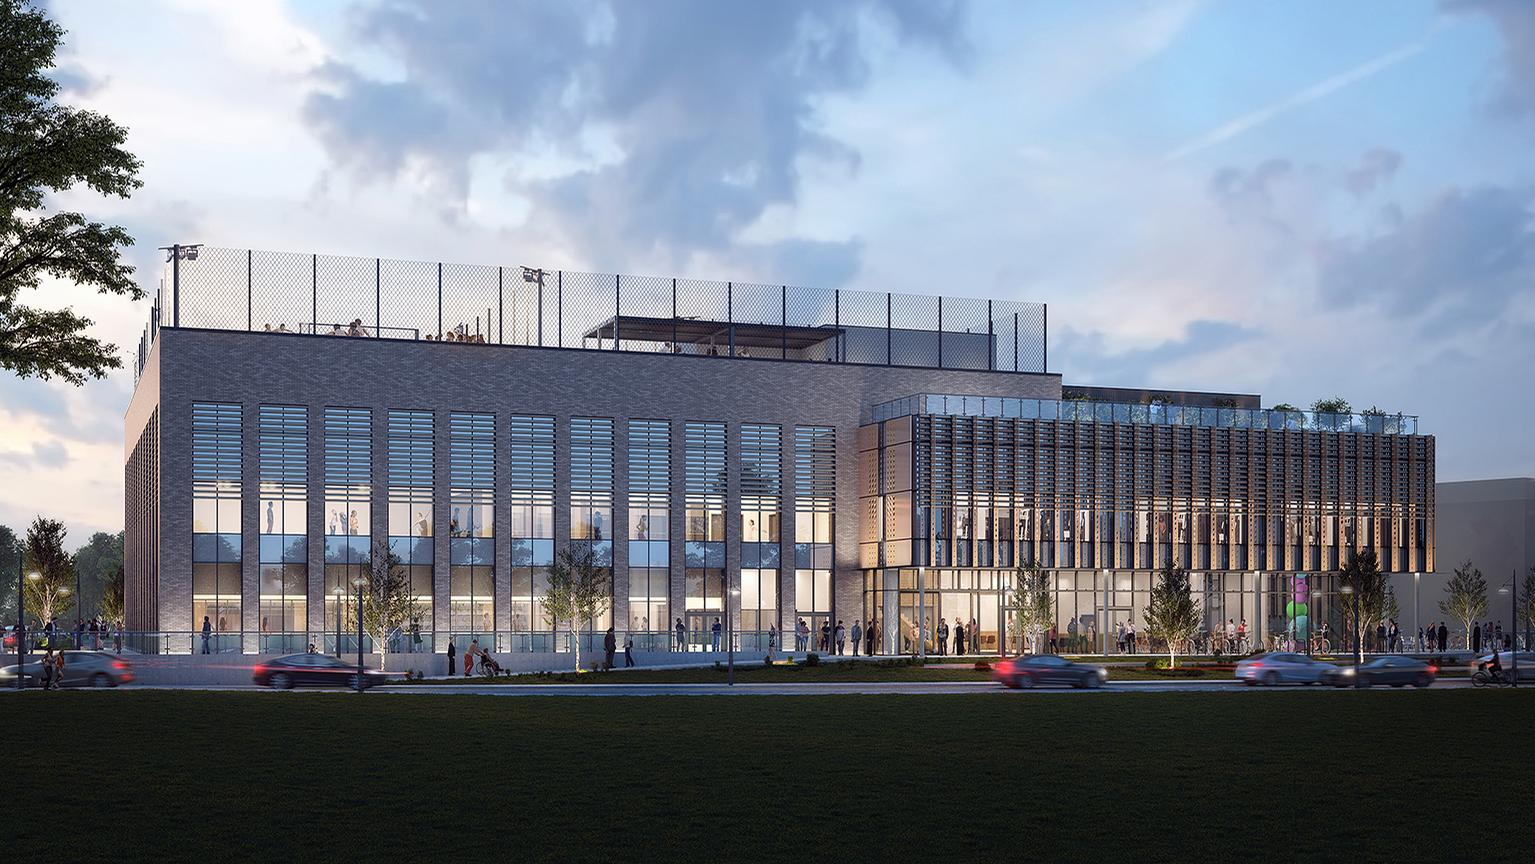 New Passivhaus leisure centre by GT3 Architects will reduce energy costs by 60%